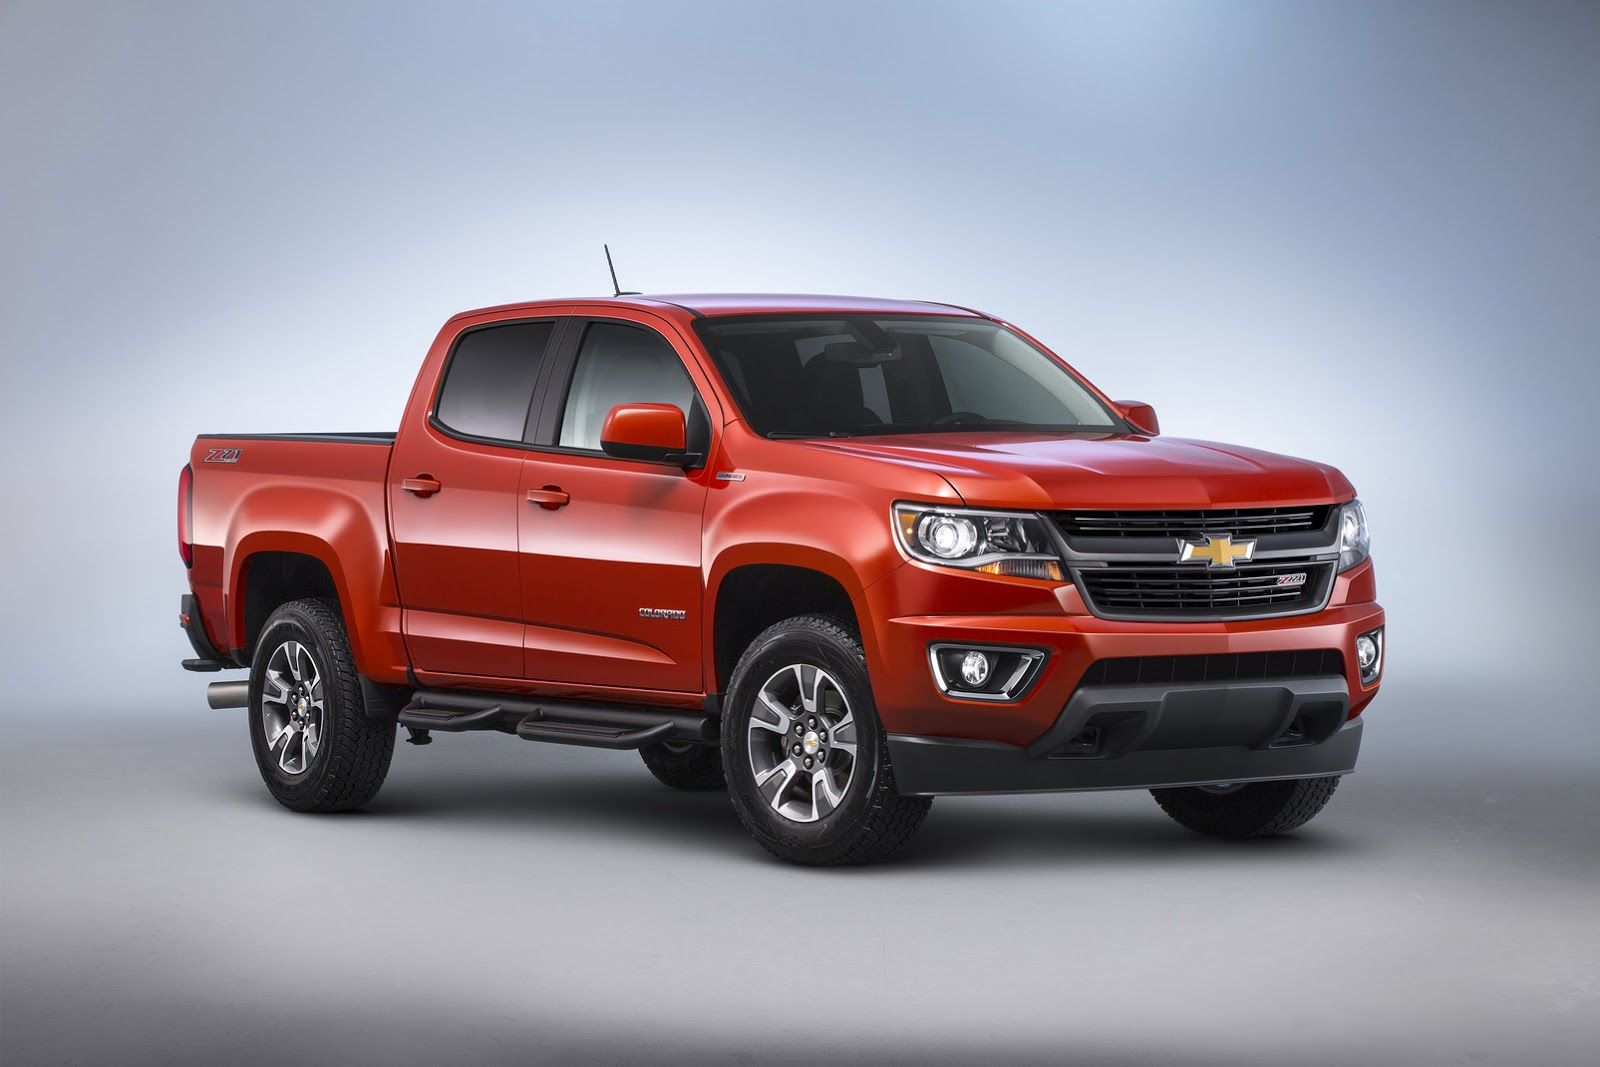 2016 chevy colorado and gmc canyon gain diesel engine in the usa carscoops. Black Bedroom Furniture Sets. Home Design Ideas